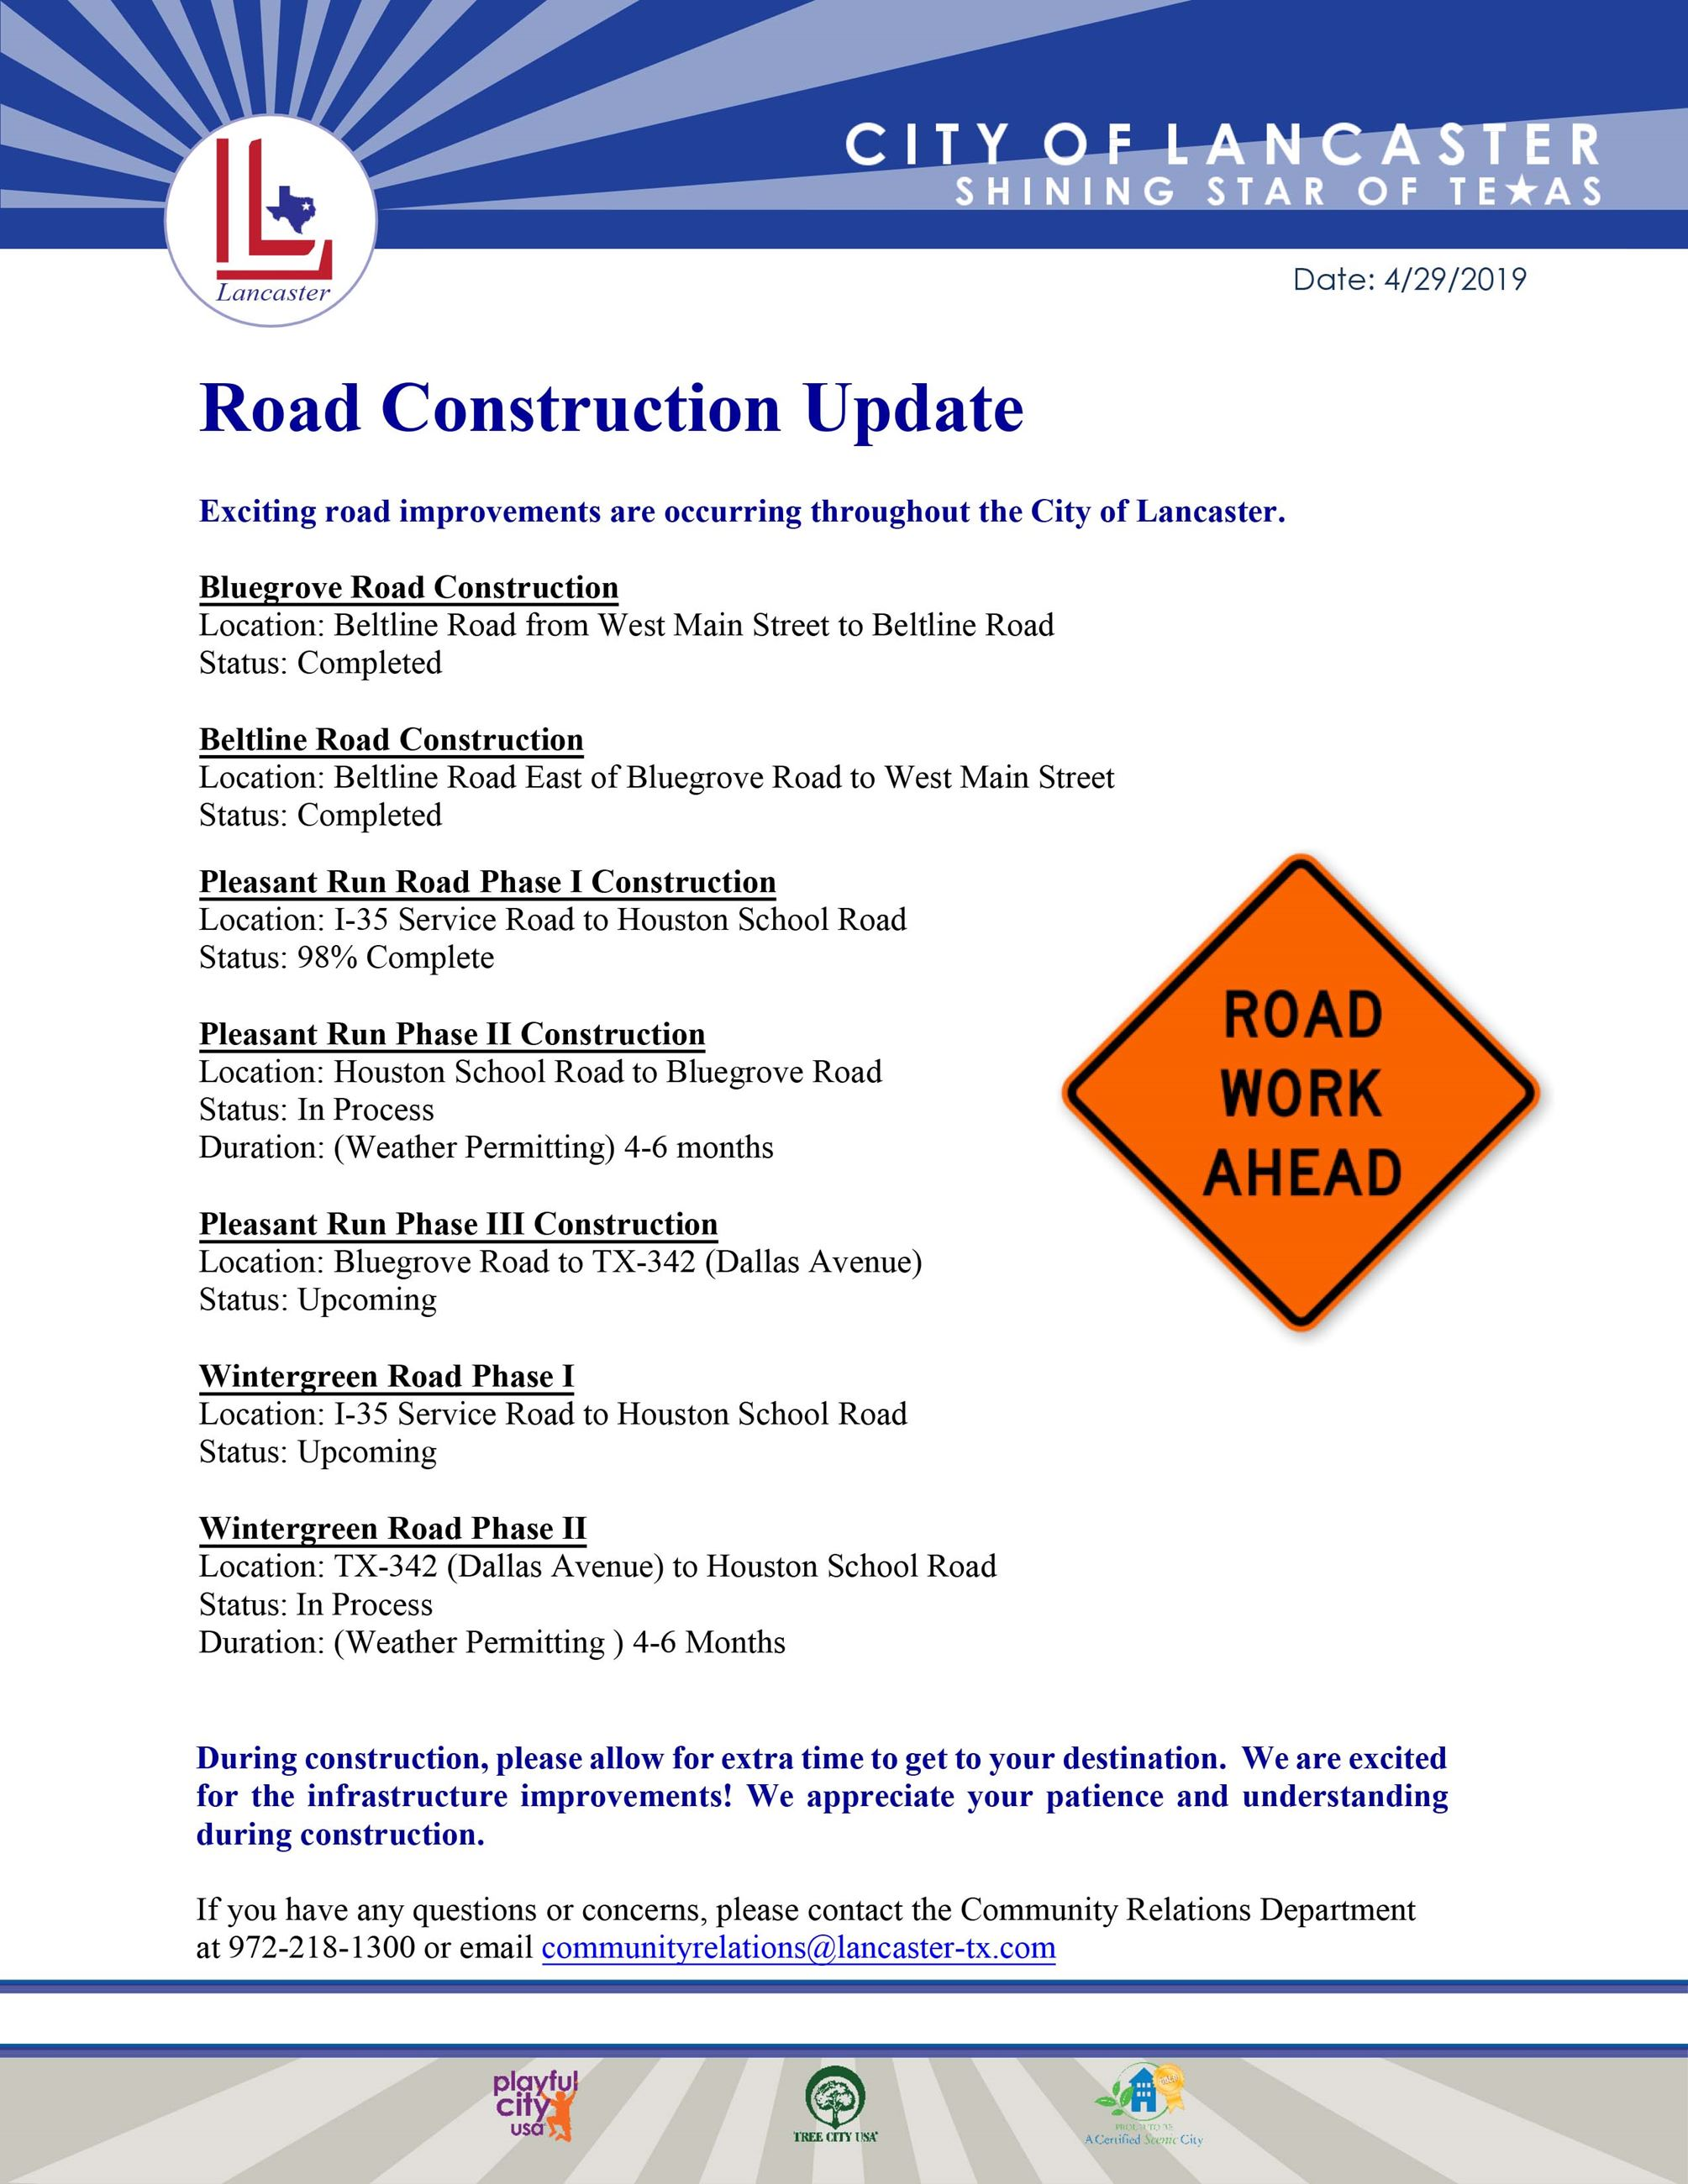 Road Construction Update 11.20.19-1